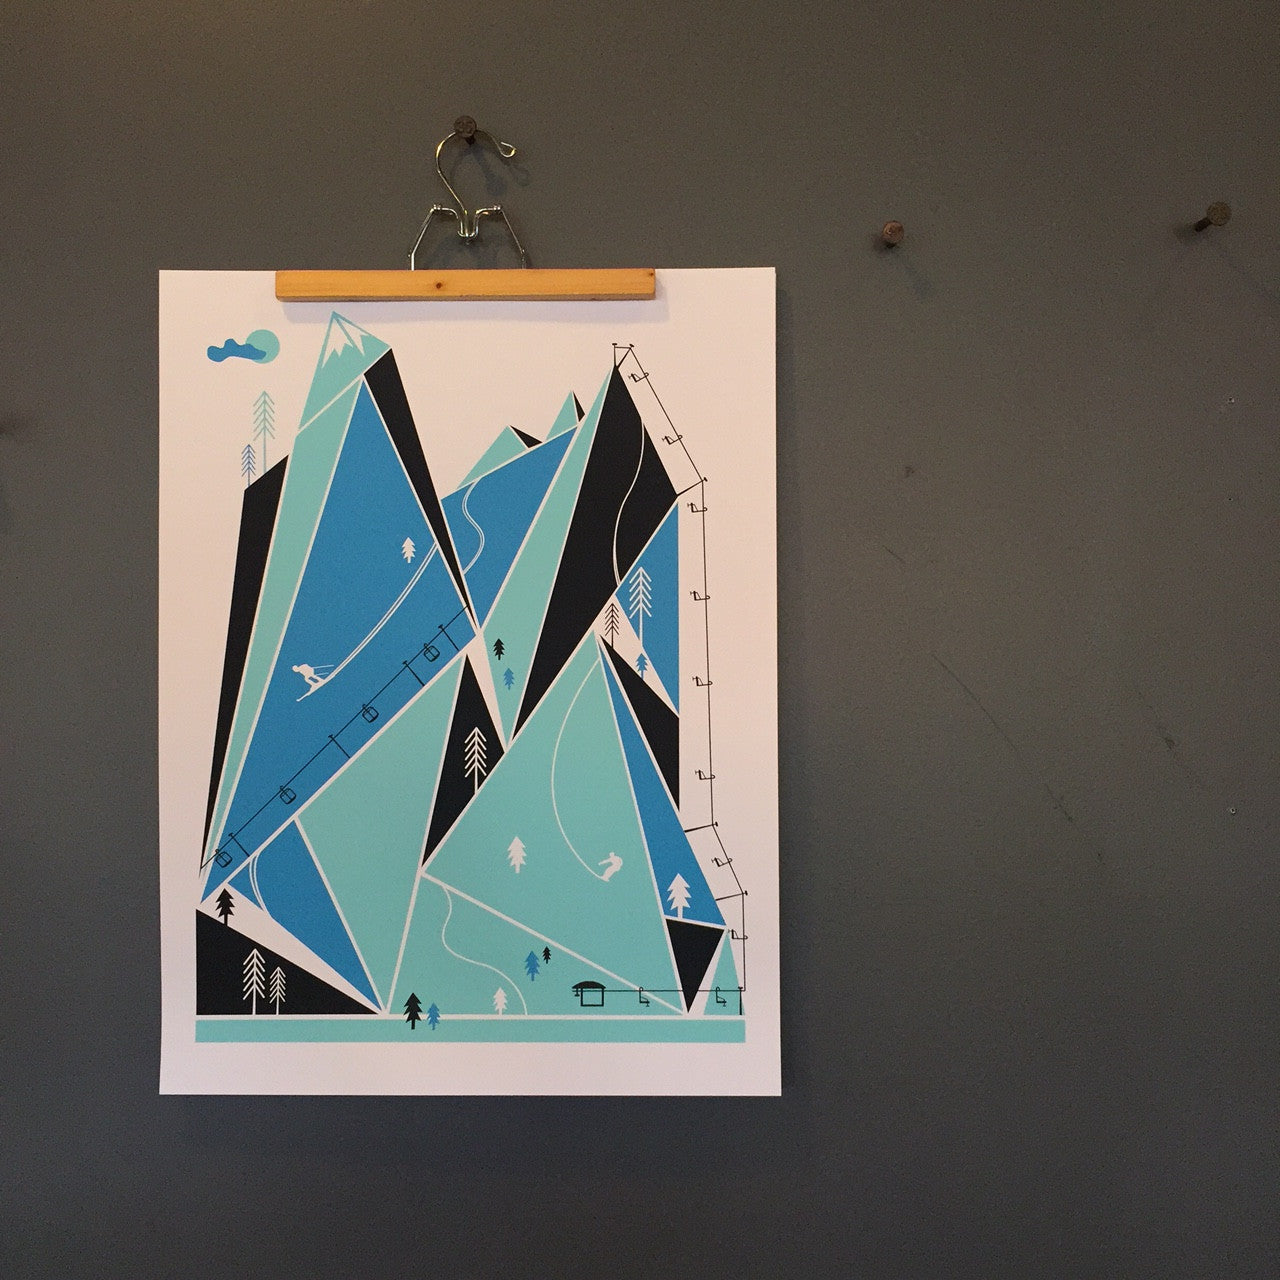 SKI HILL Screenprint by We Are Brainstorm - Upstate MN